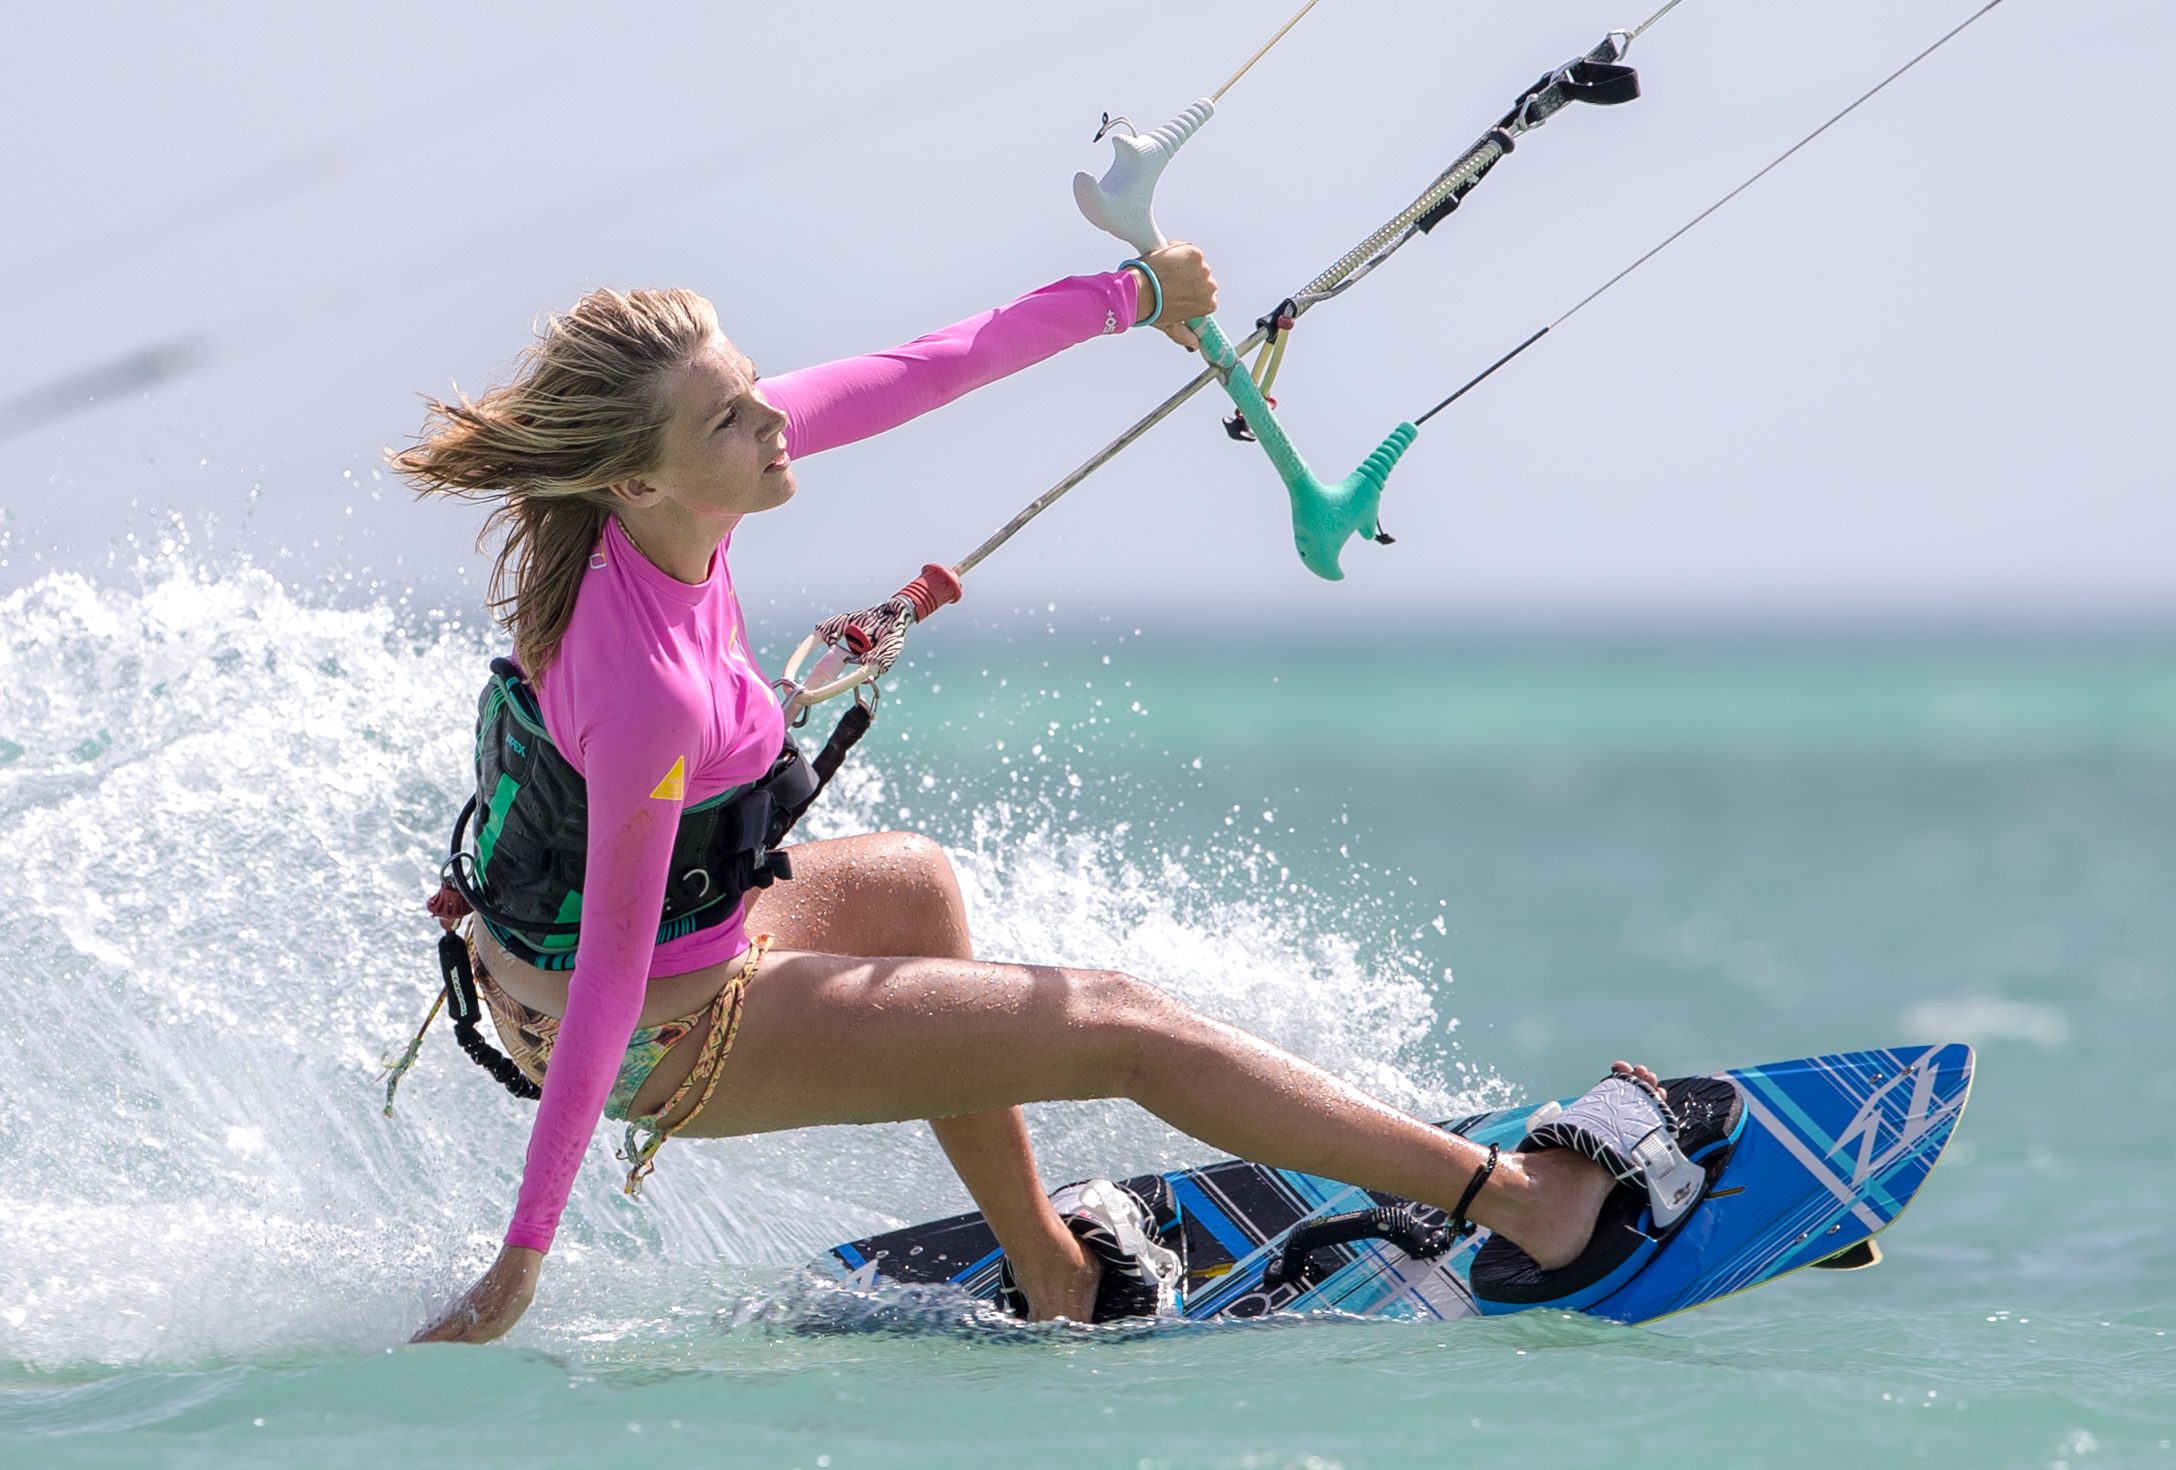 Female Kitesurfers